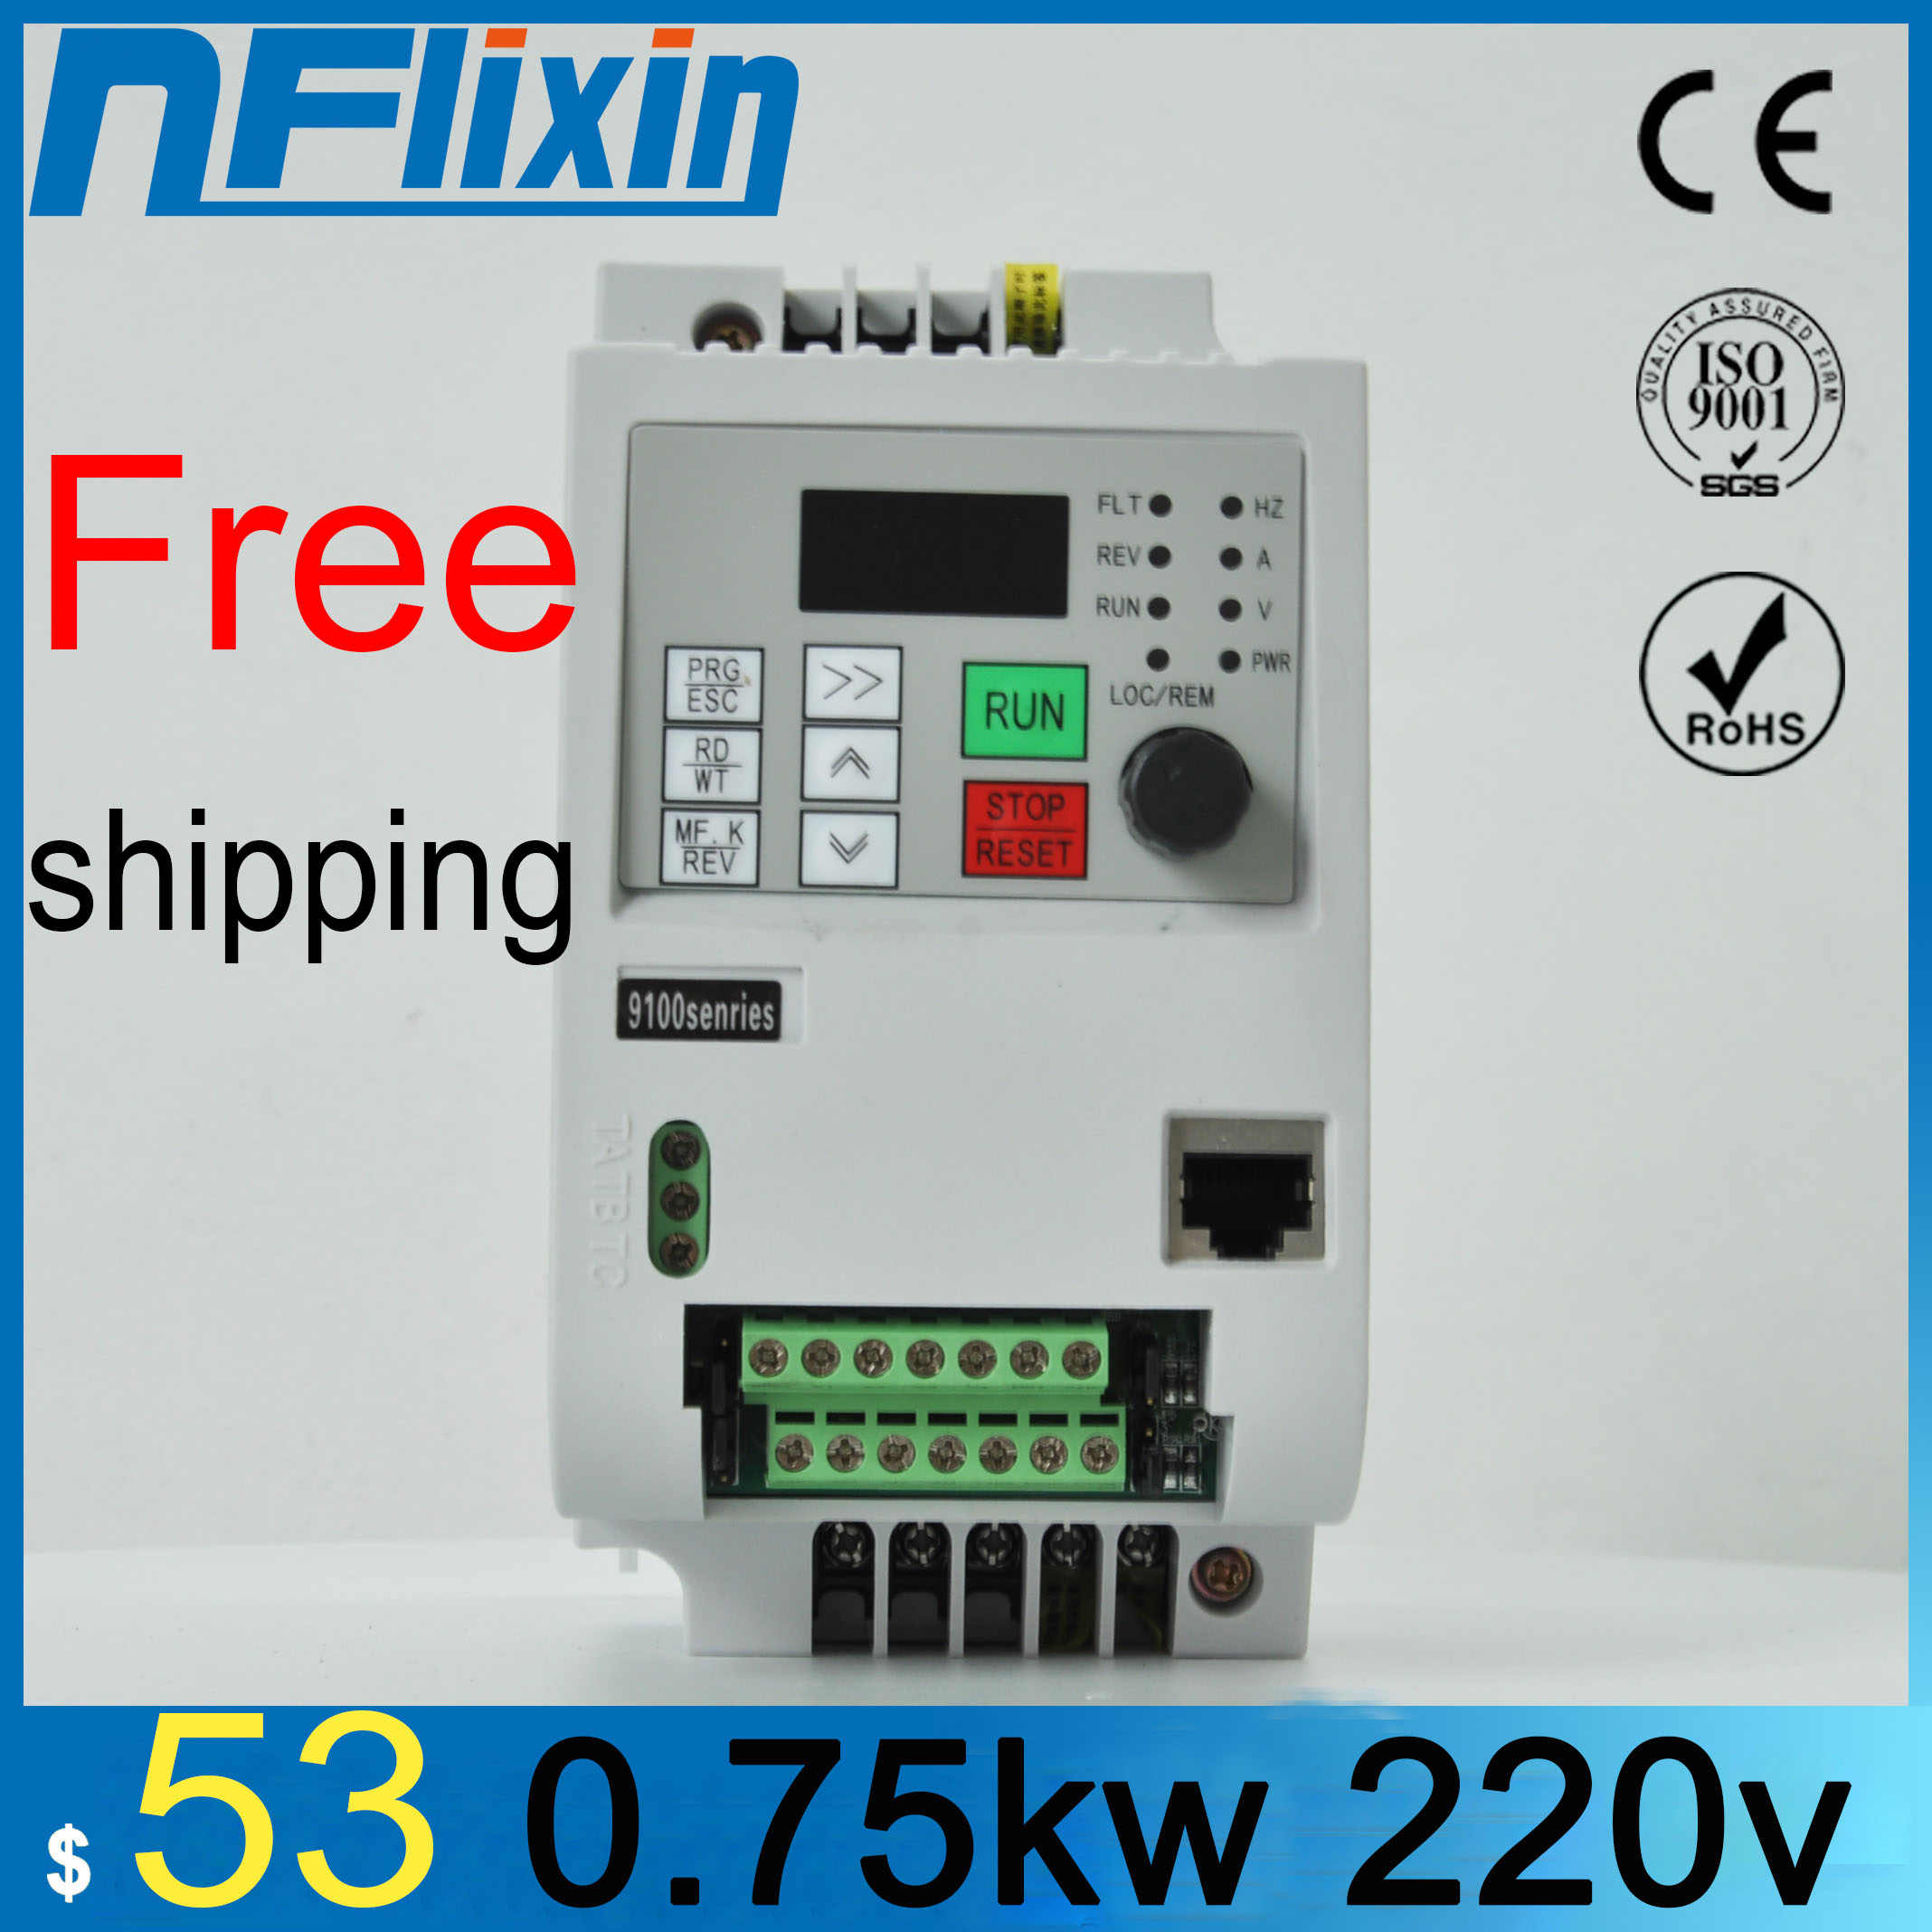 NFLixin 0.75KW 220V VFD Single Phase input and 3 Phase Output Frequency Converter/Adjustable Speed Drive /Frequency Inverter